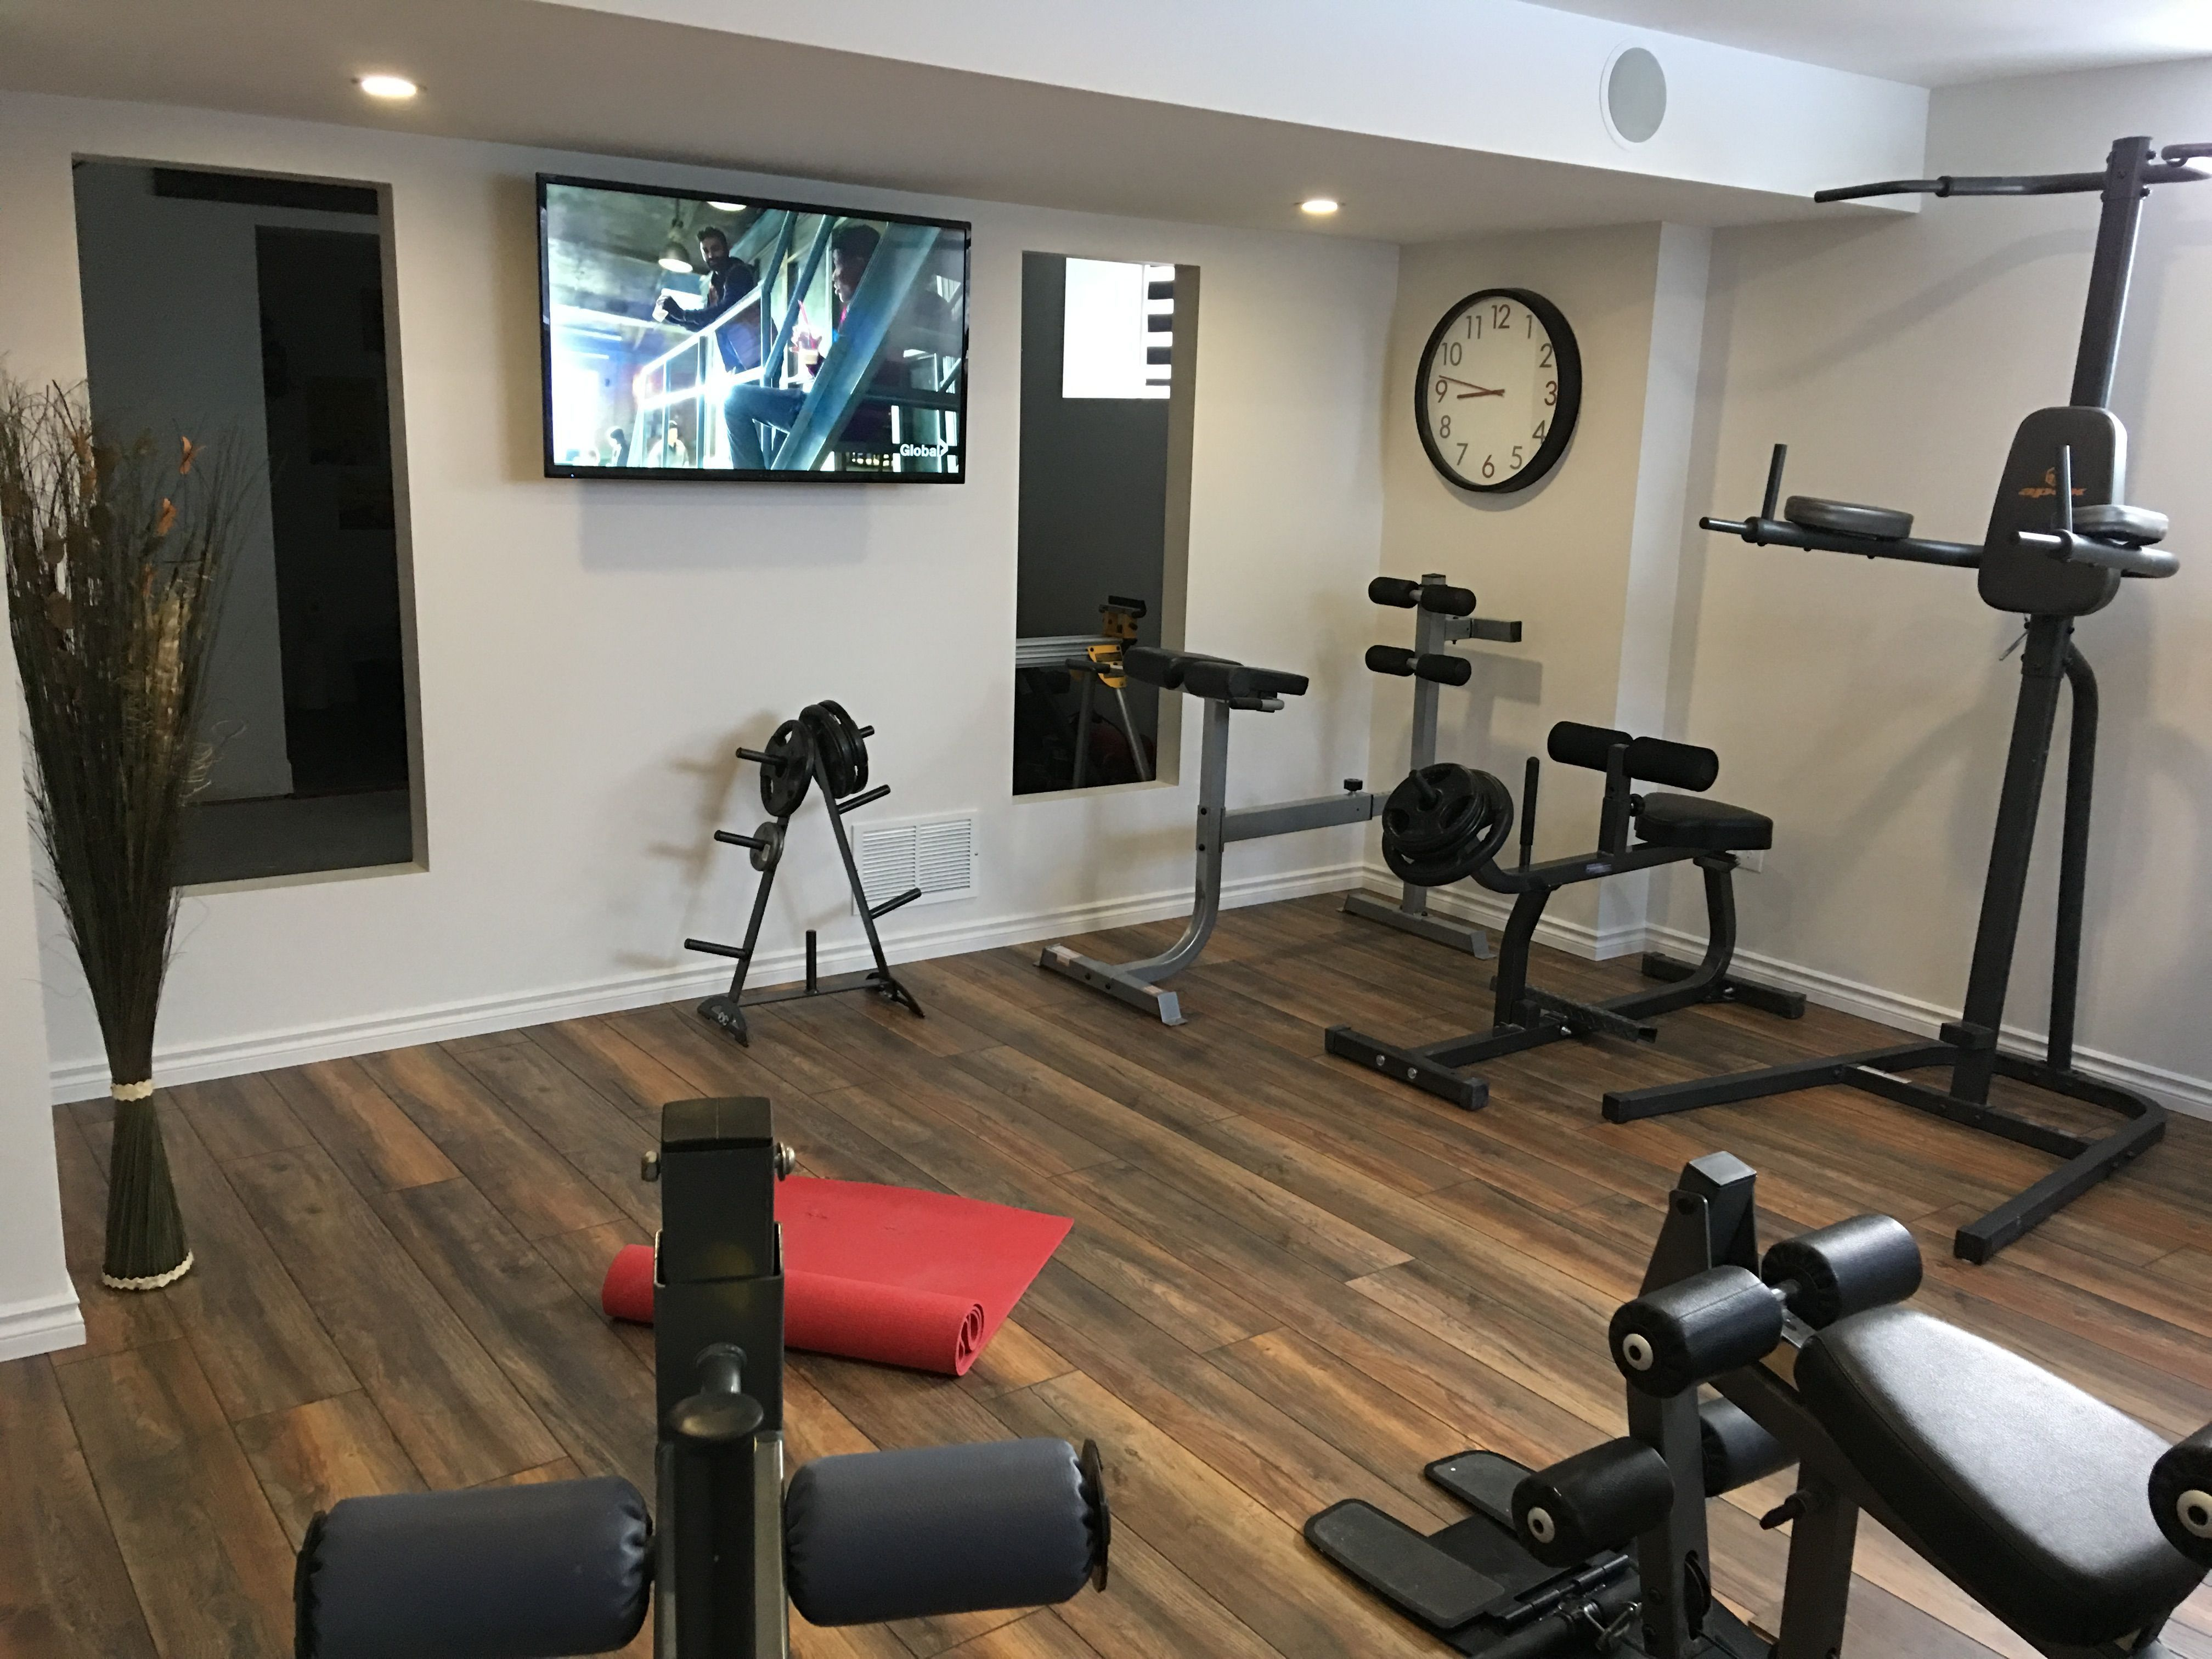 New Flooring Added A Couple Of Hours To Install A Beautiful Laminate Flooring Gym Room At Home Home Gym Decor Basement Makeover